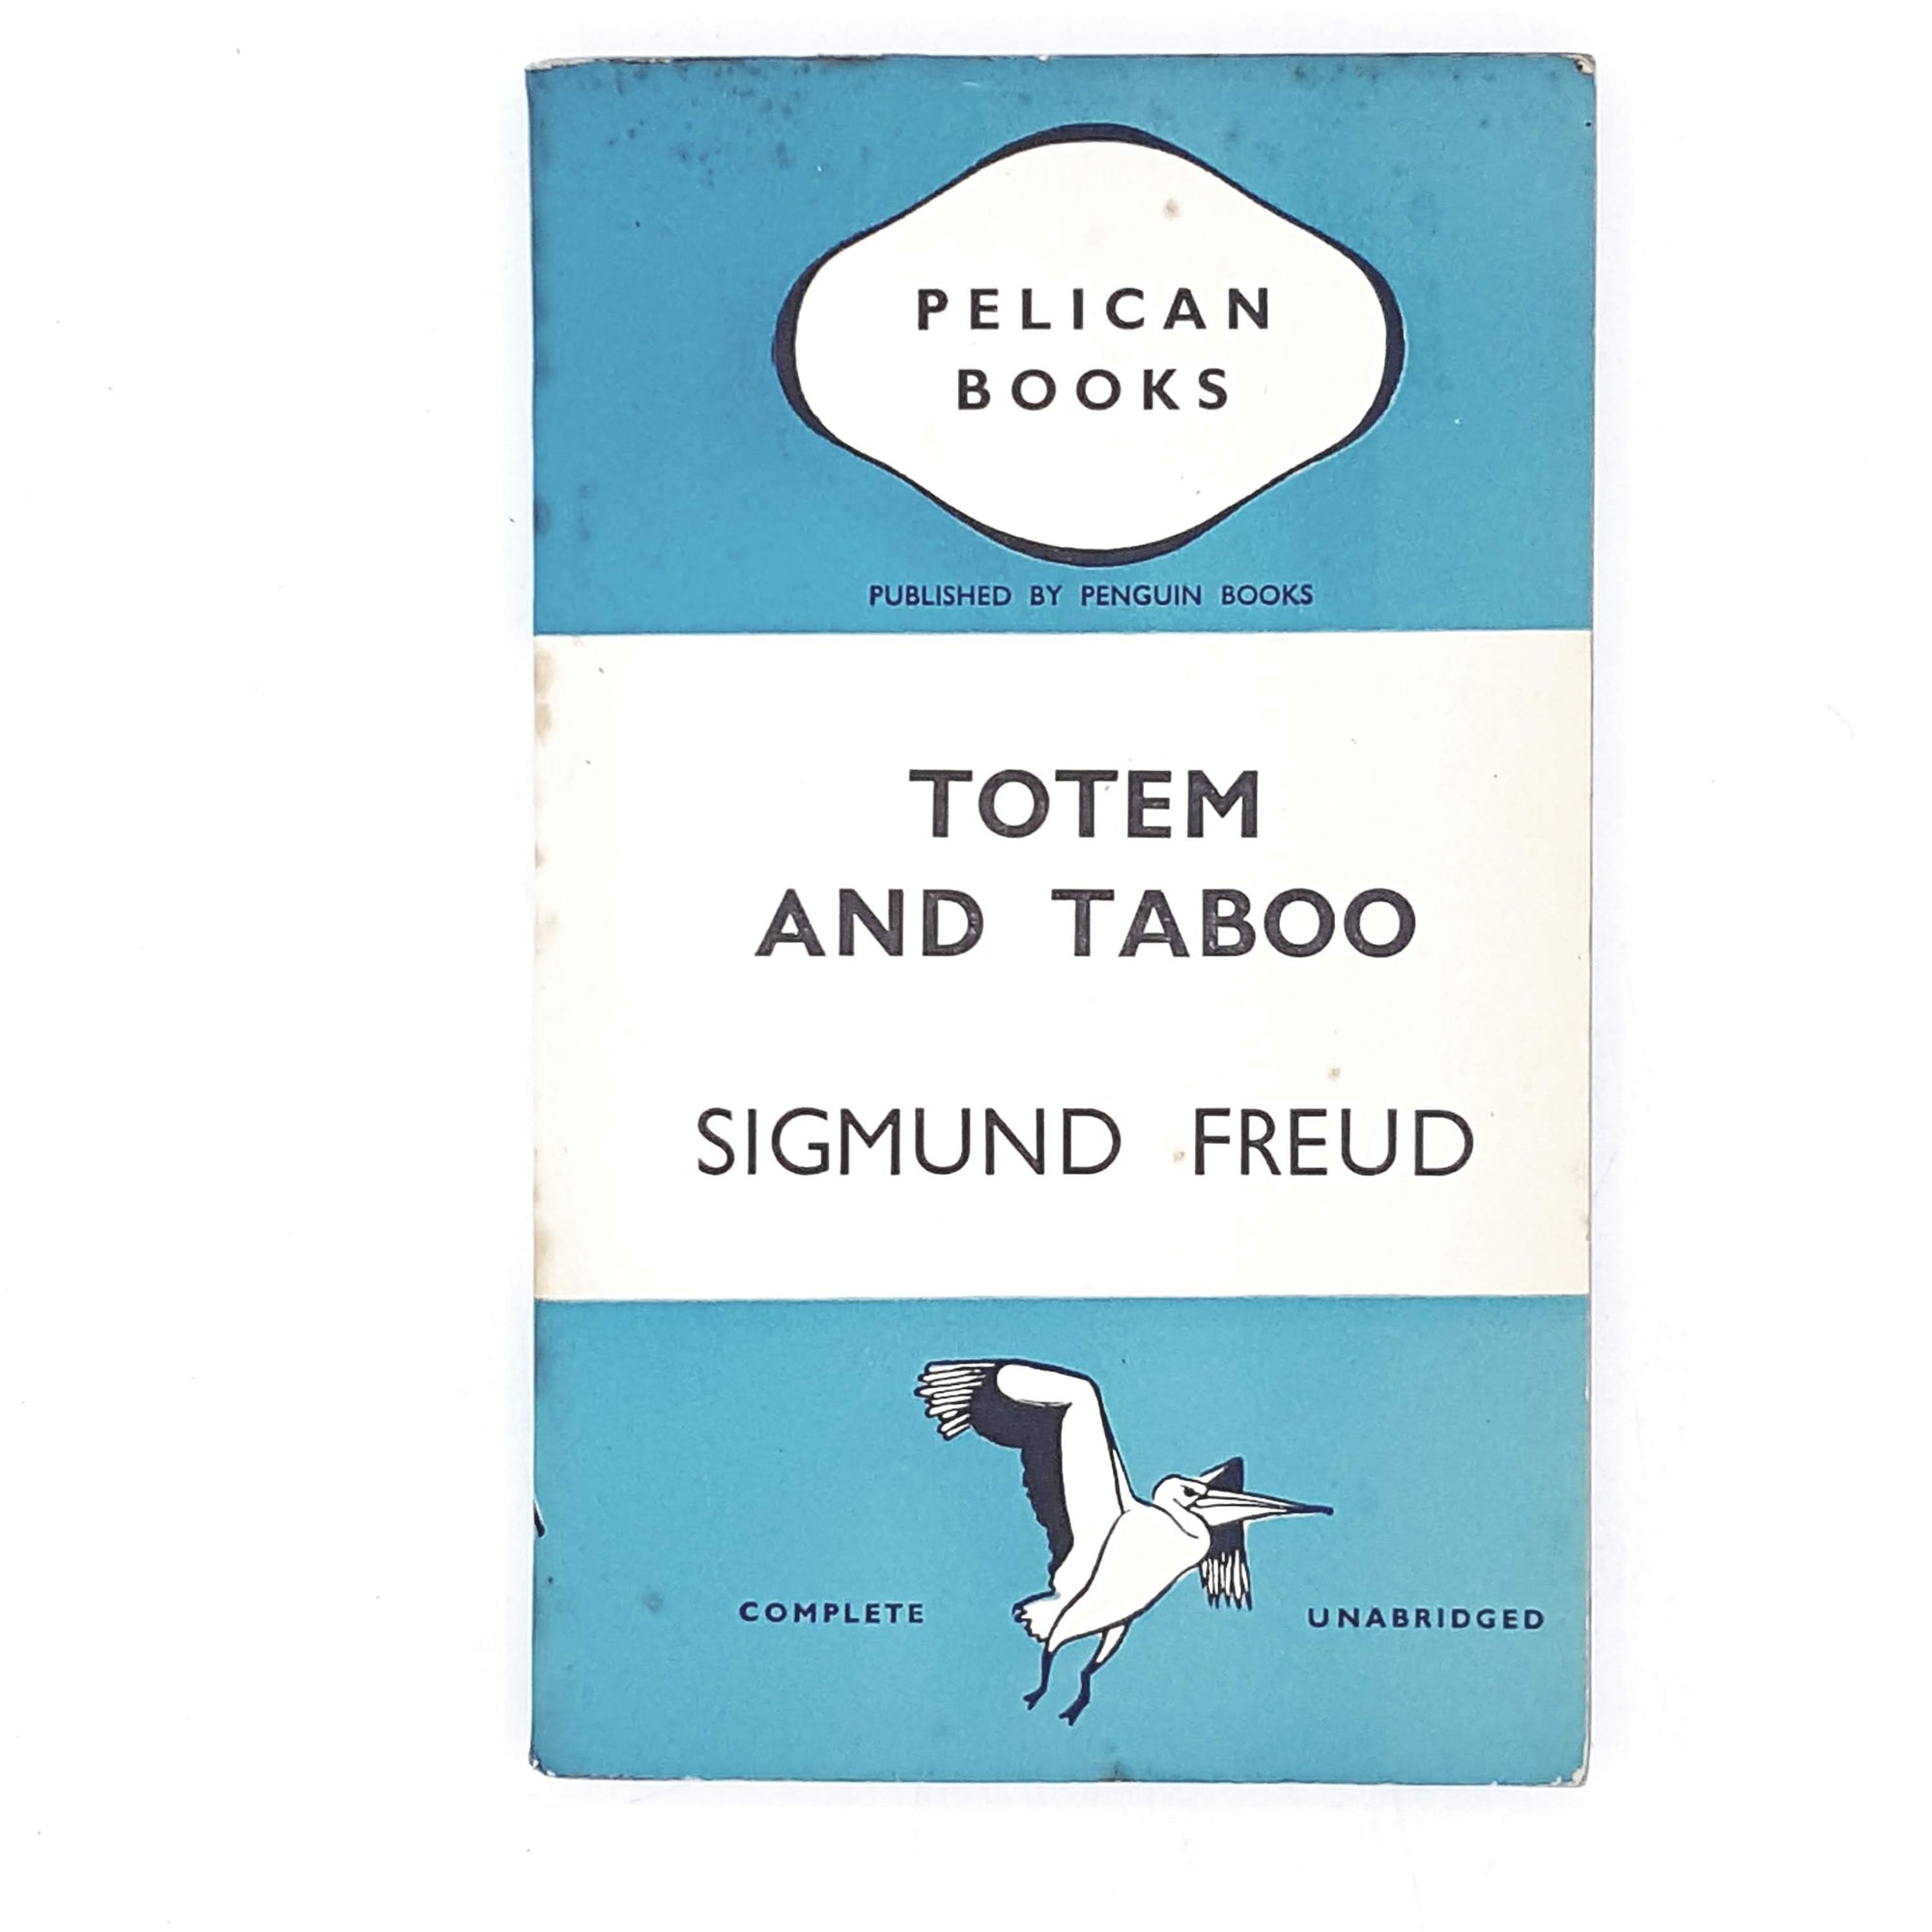 Totem and Taboo by Sigmund Freud 1940